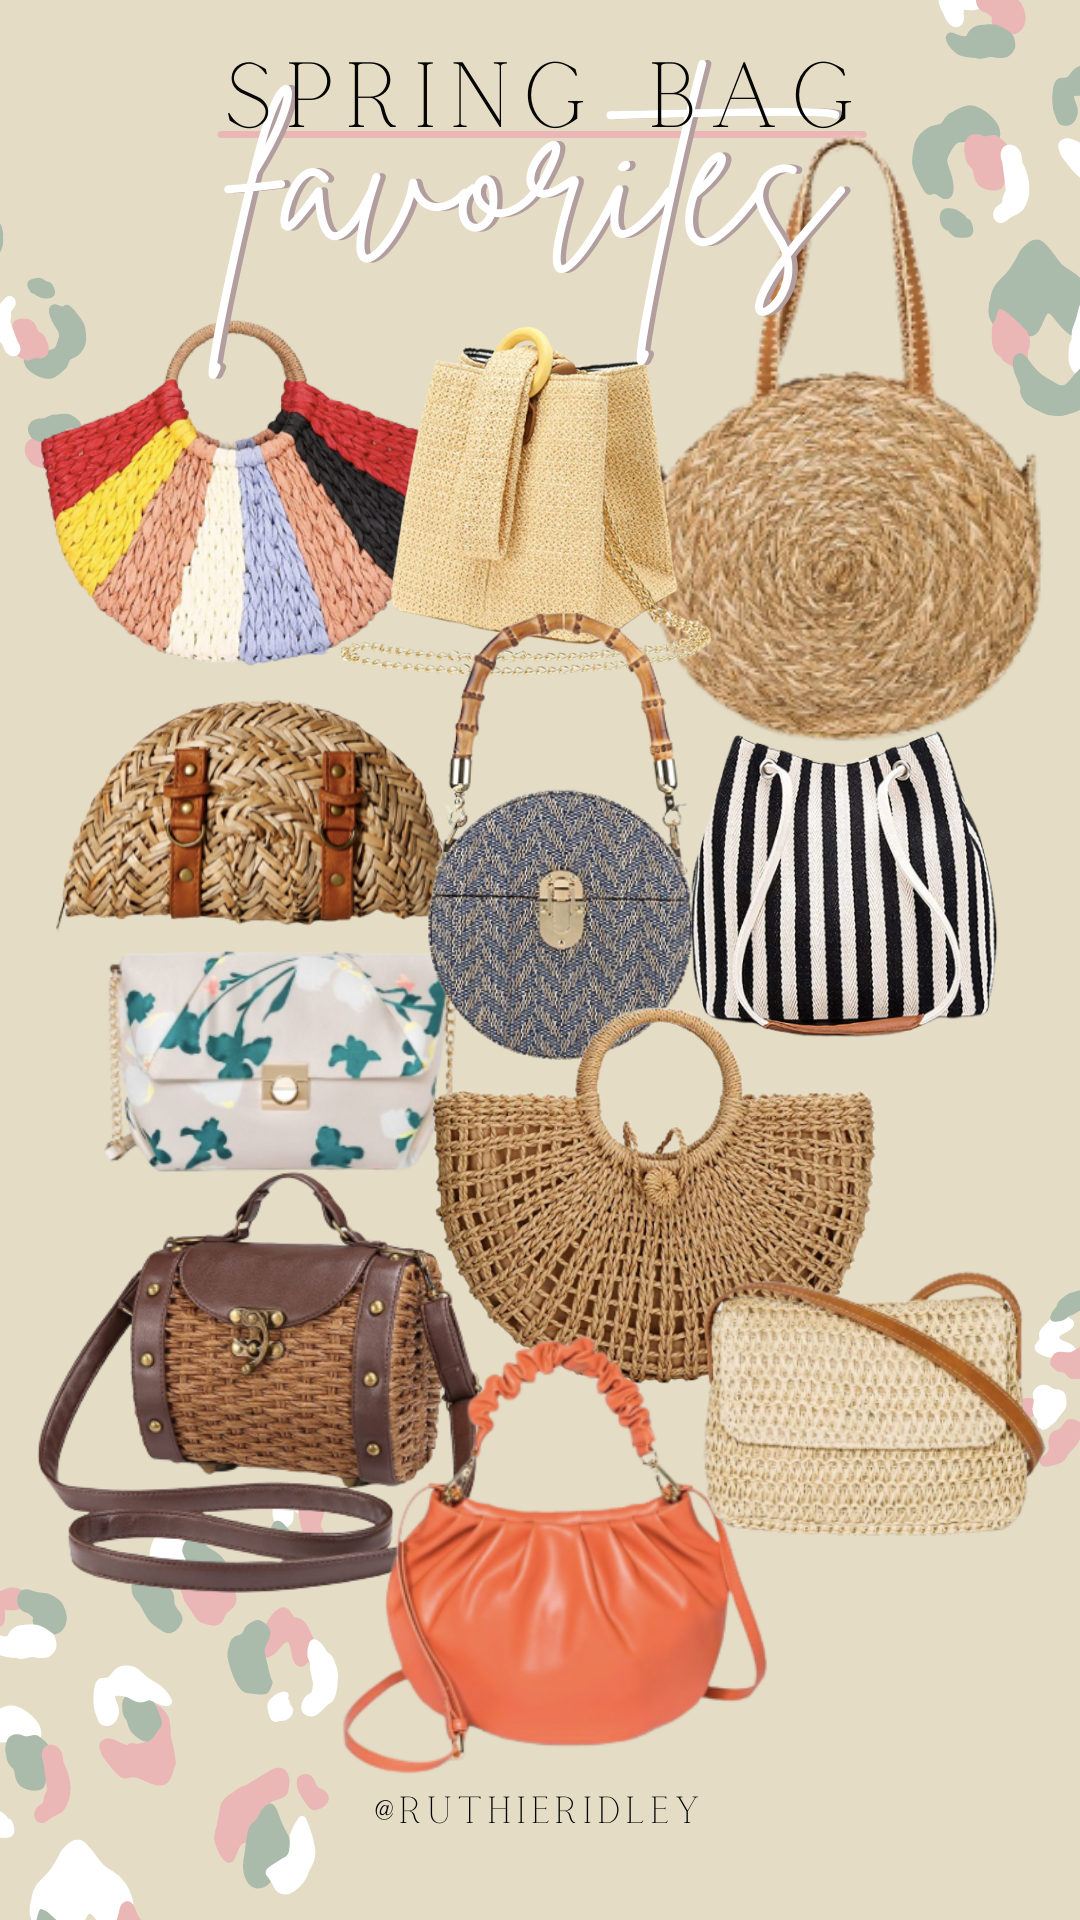 Ruthie Ridley Blog Spring Bags